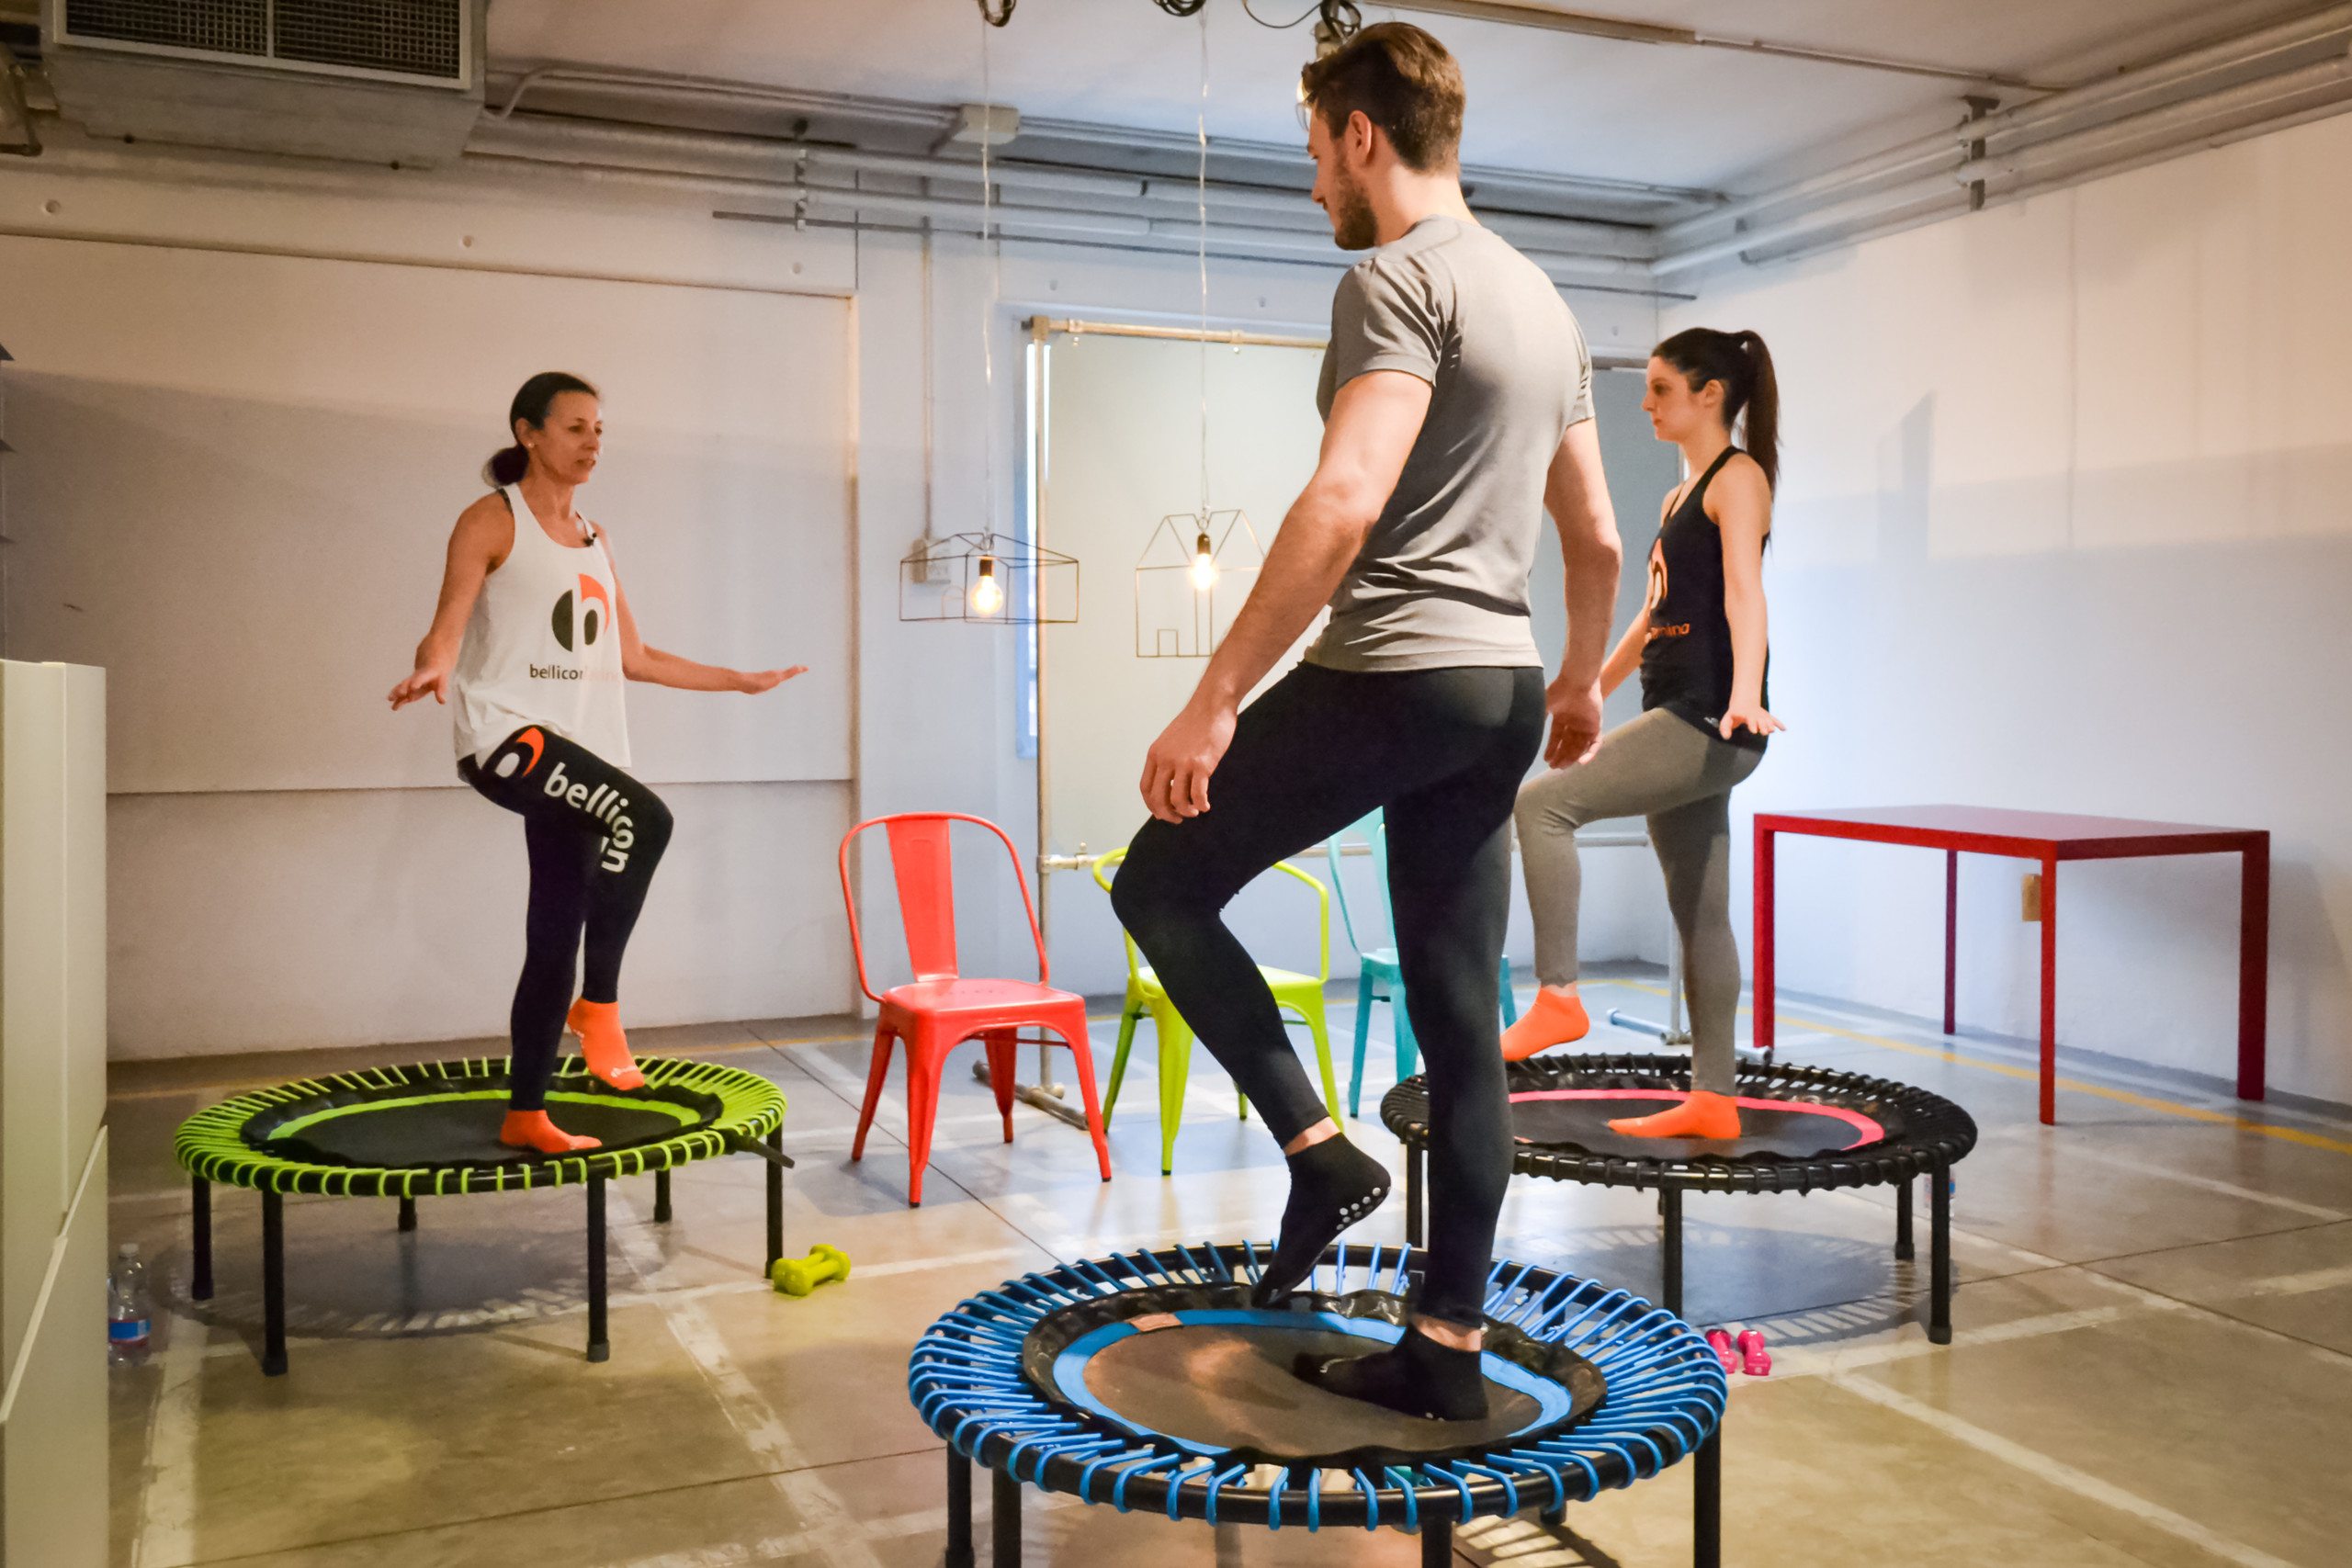 Group trampoline cardio workout class